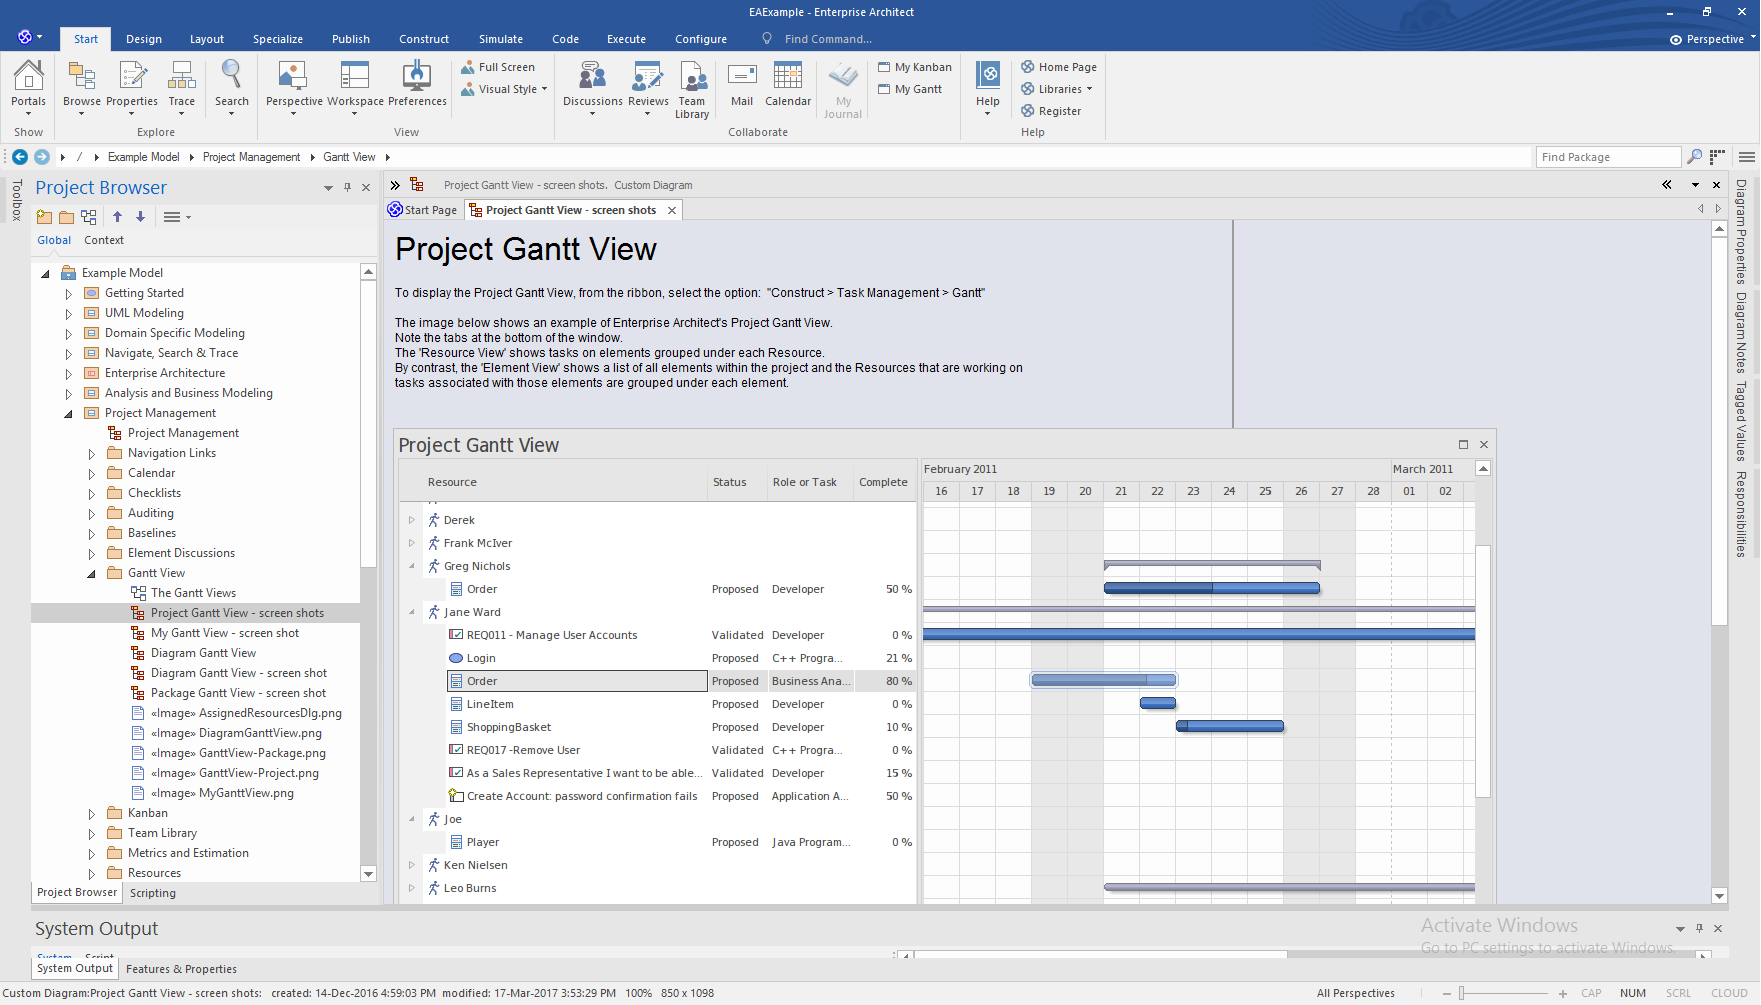 Enterprise Architect professional Edition: Project Gantt